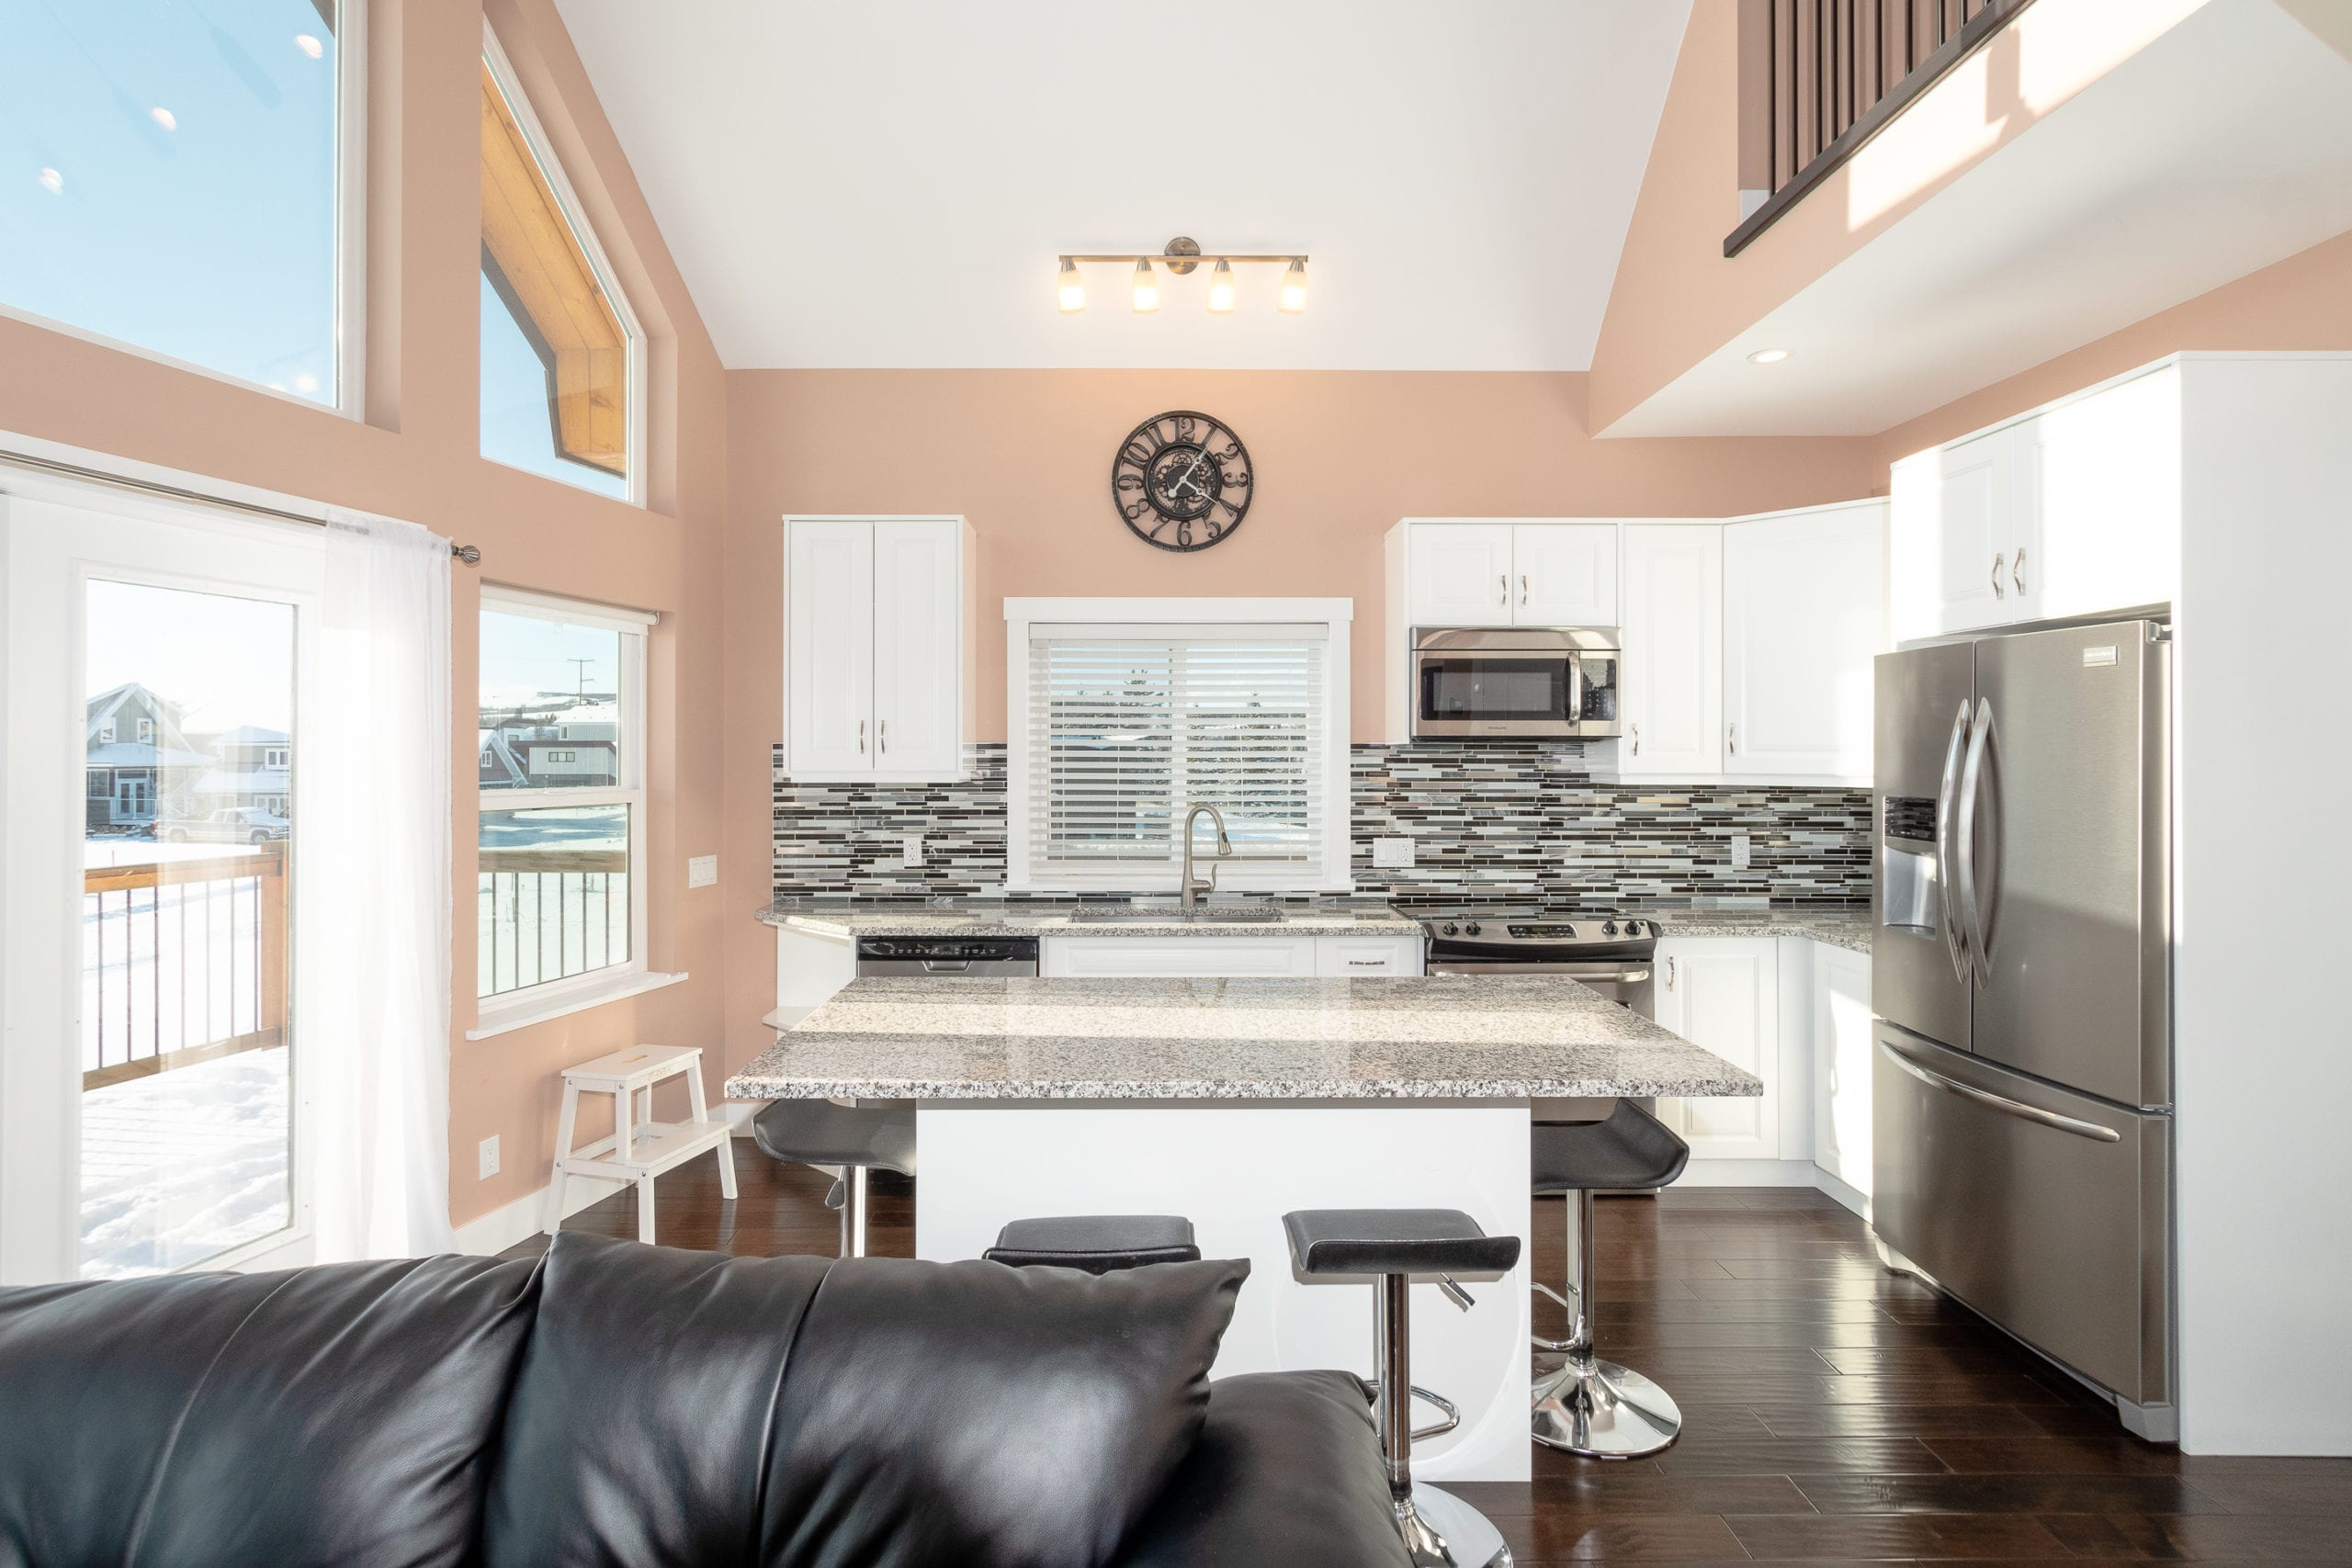 Hello Gorgeous - 456 Cottageclub Cove, Rocky View No. 44, AB - Tara Molina Real Estate (9 of 41)